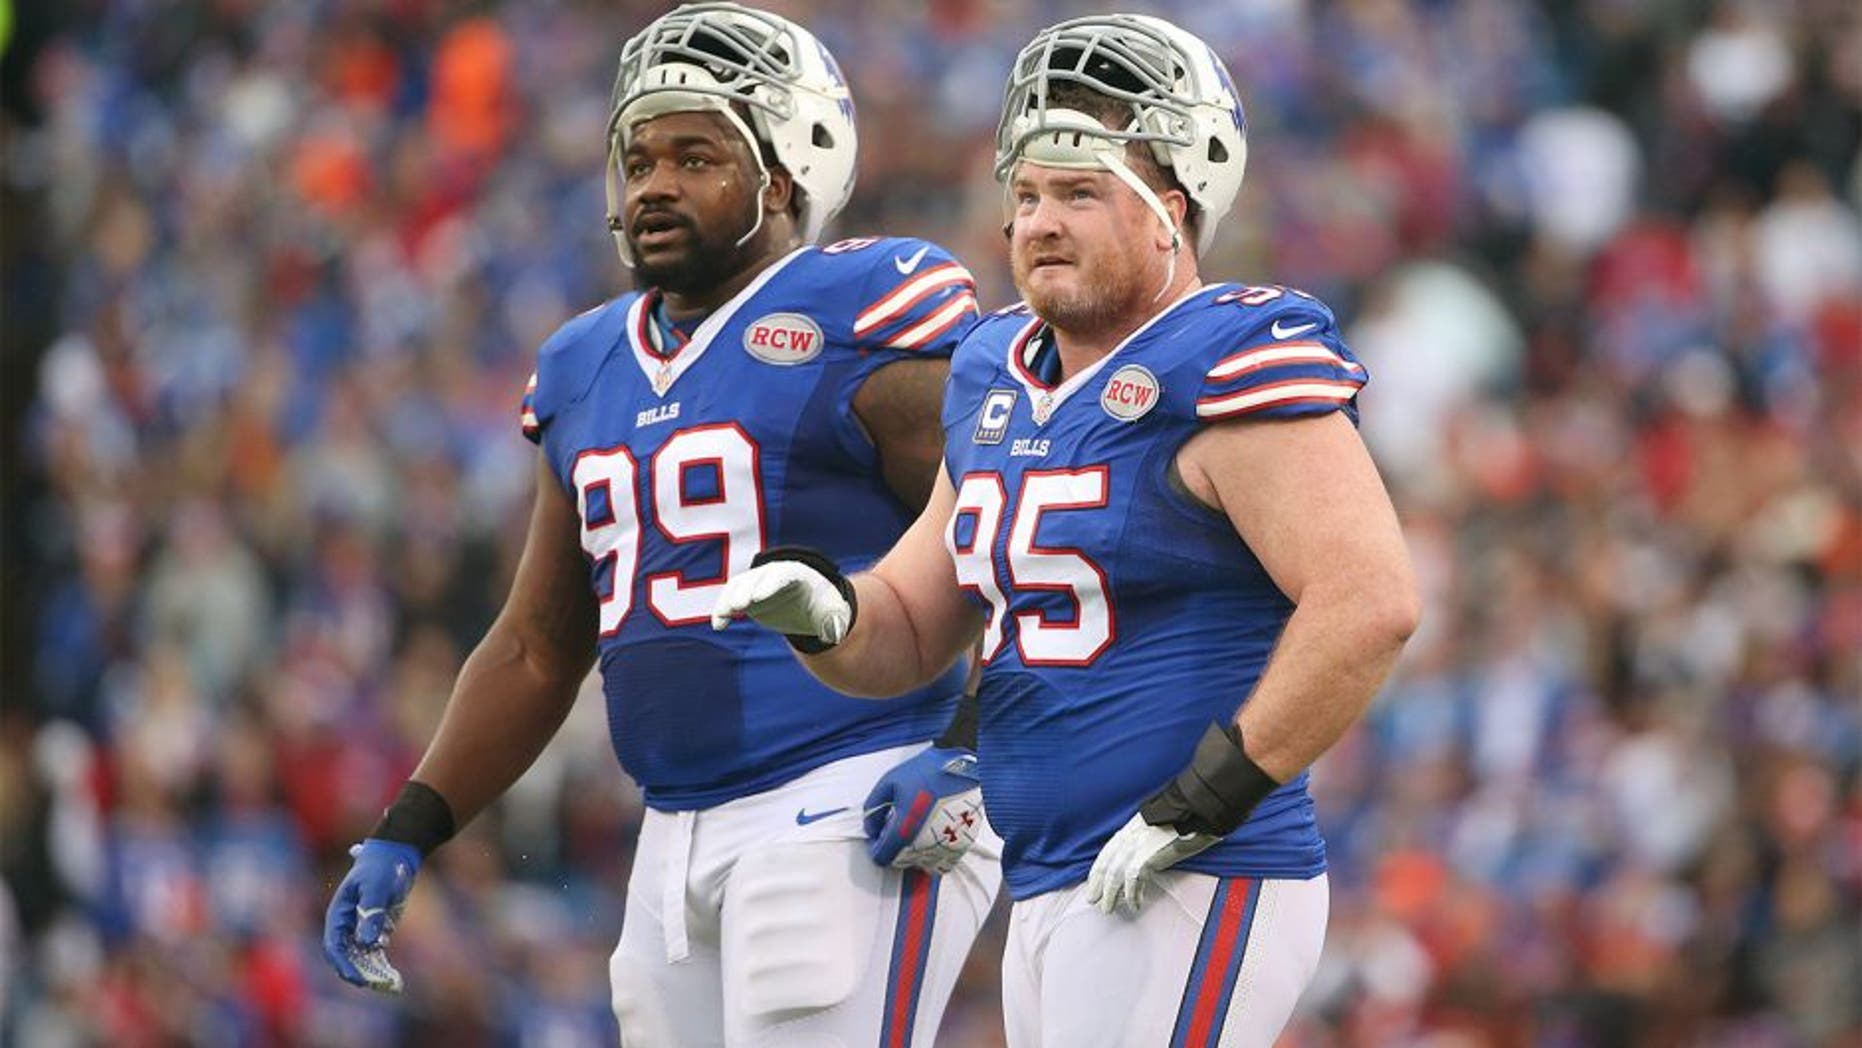 ORCHARD PARK, NY - NOVEMBER 30: Kyle Williams #95 of the Buffalo Bills and Marcell Dareus #99 look on during NFL game action against the Cleveland Browns at Ralph Wilson Stadium on November 30, 2014 in Orchard Park, New York. (Photo by Tom Szczerbowski/Getty Images)